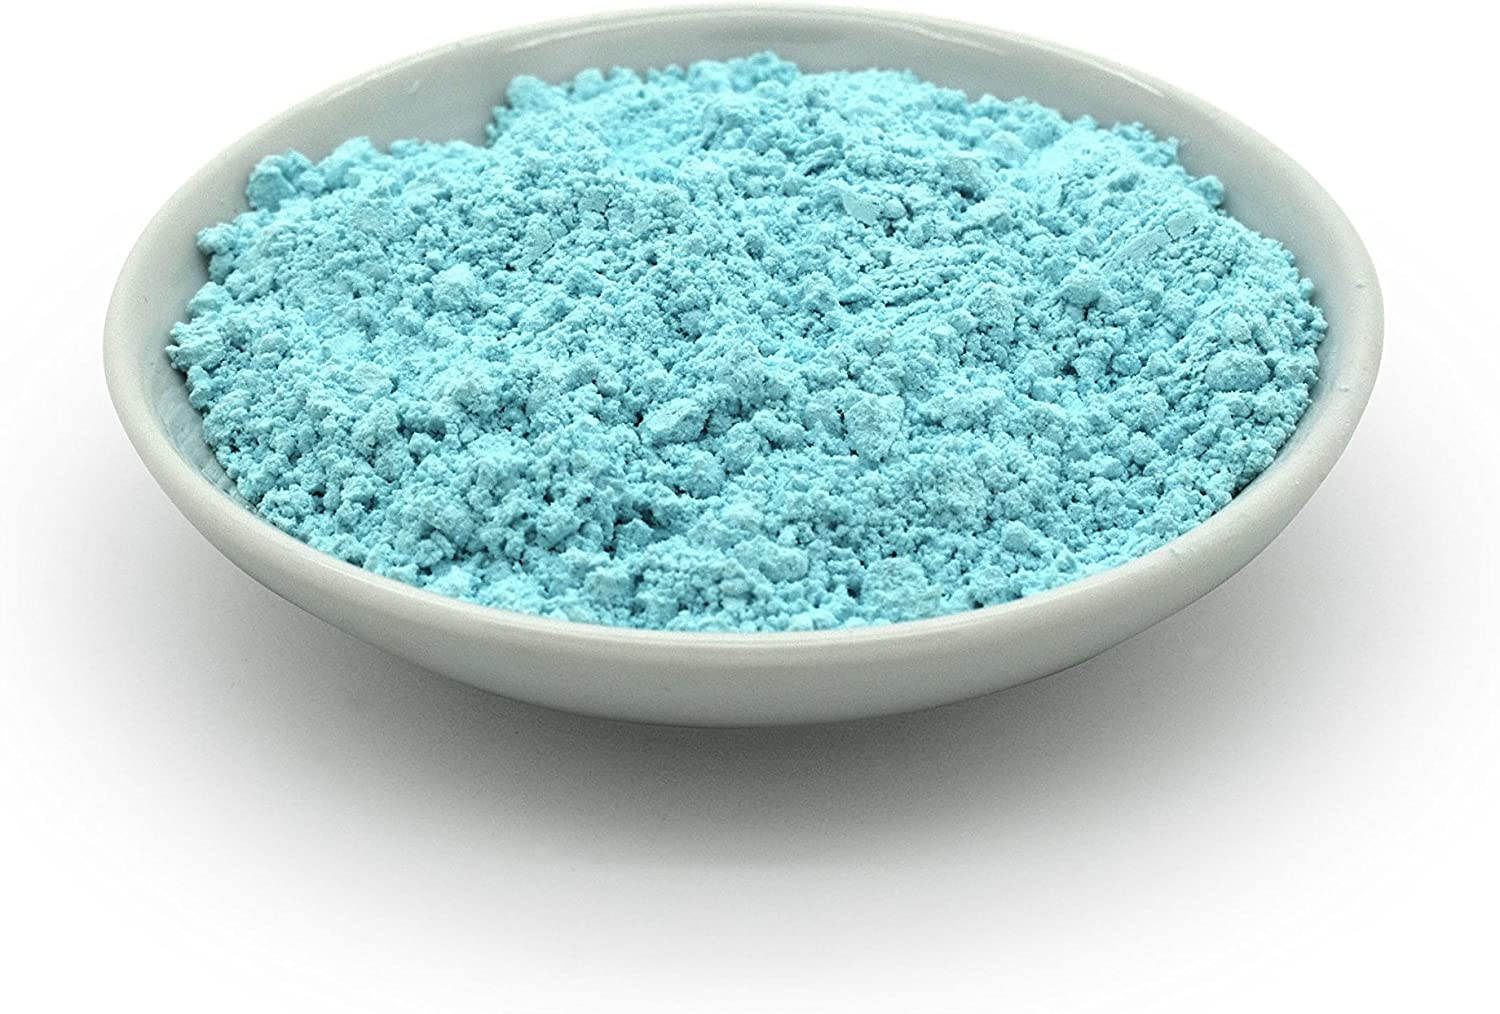 POWDER Wood light blue material 1 FULL oz NATURAL Crushed Turquoise Inlay fines